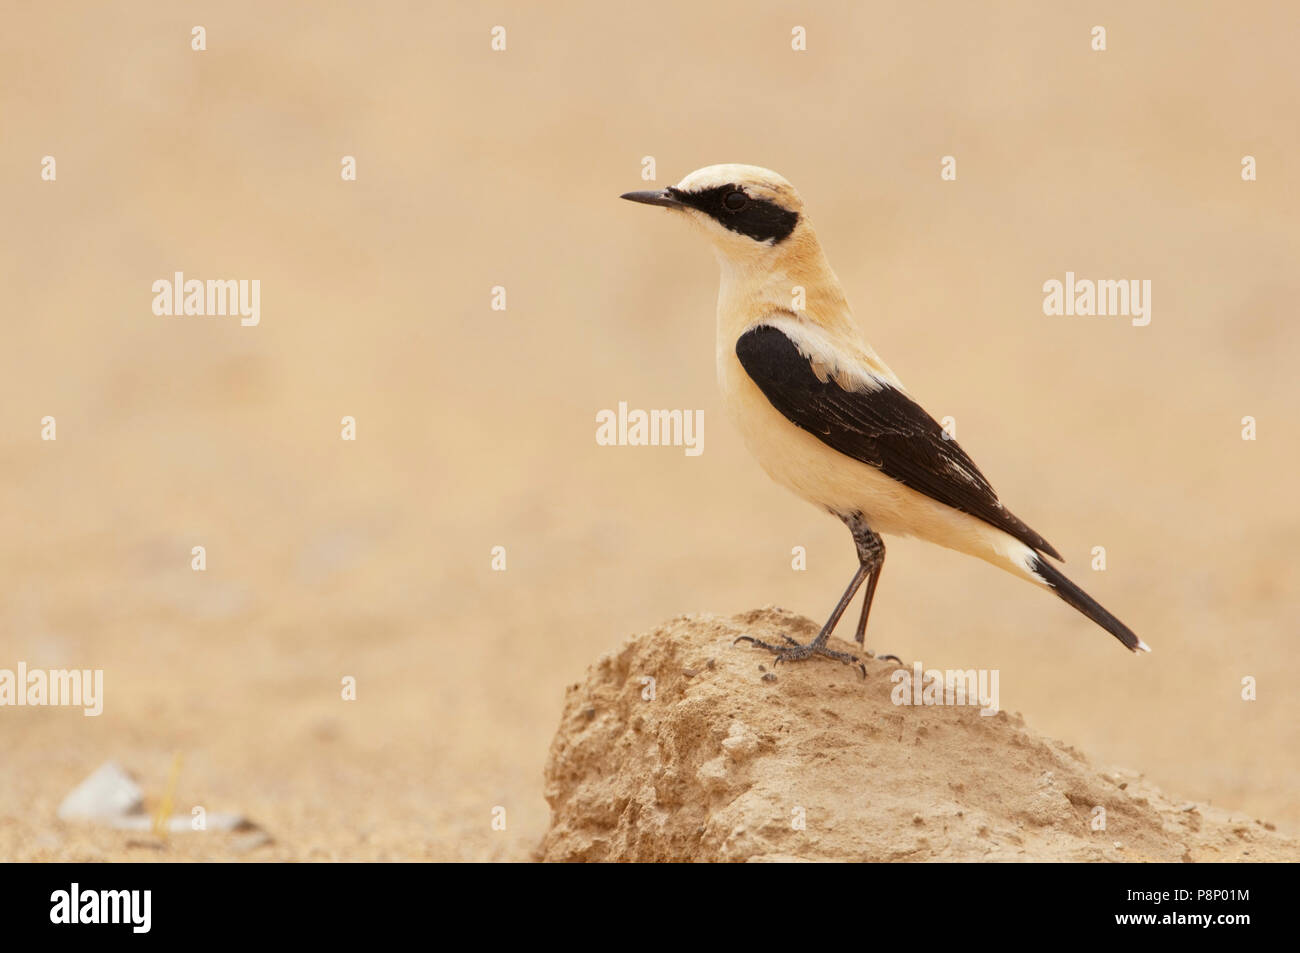 Western Black-eared Wheatear (Oenanthe hispanica) on spring migration in the desert - Stock Image